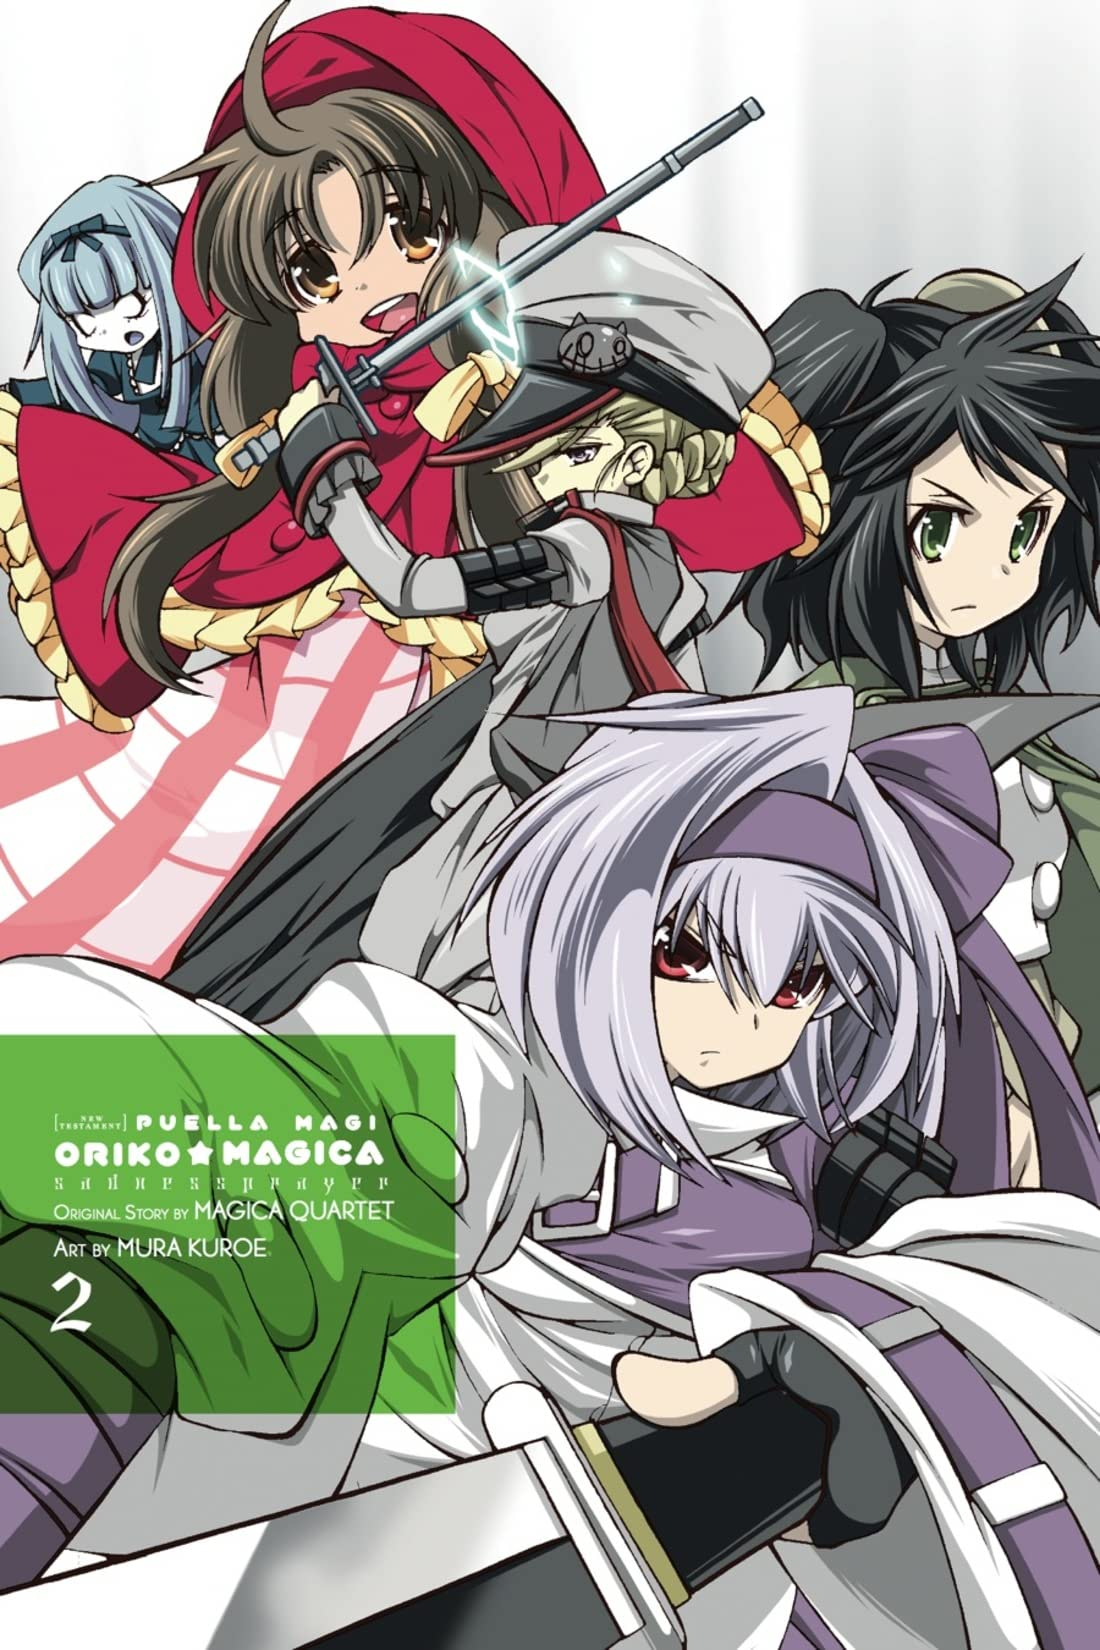 Puella Magi Oriko Magica: Sadness Prayer Vol. 2